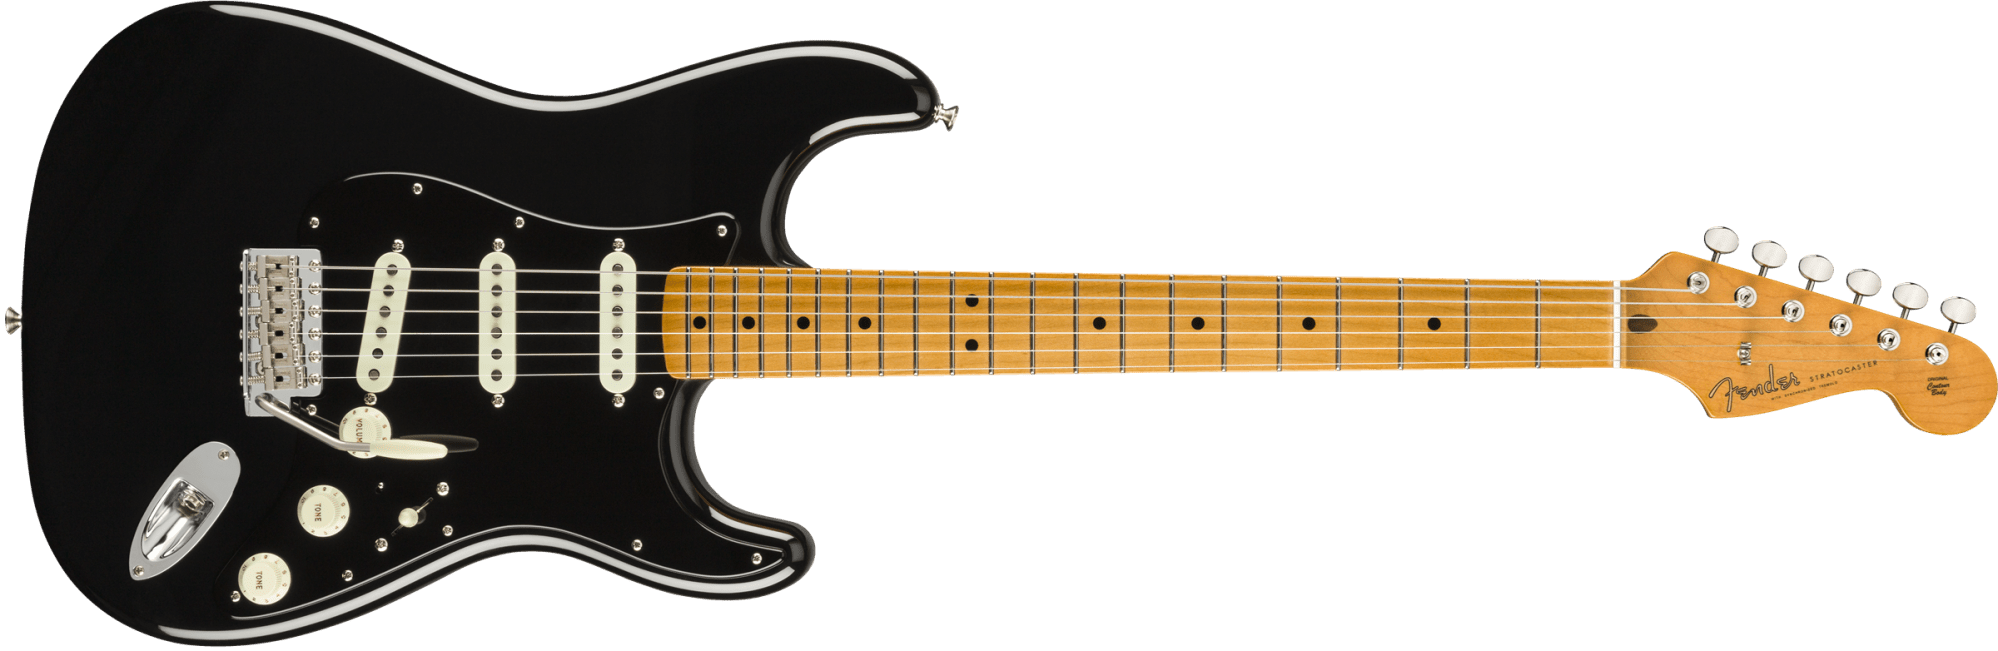 hight resolution of david gilmour signature stratocaster